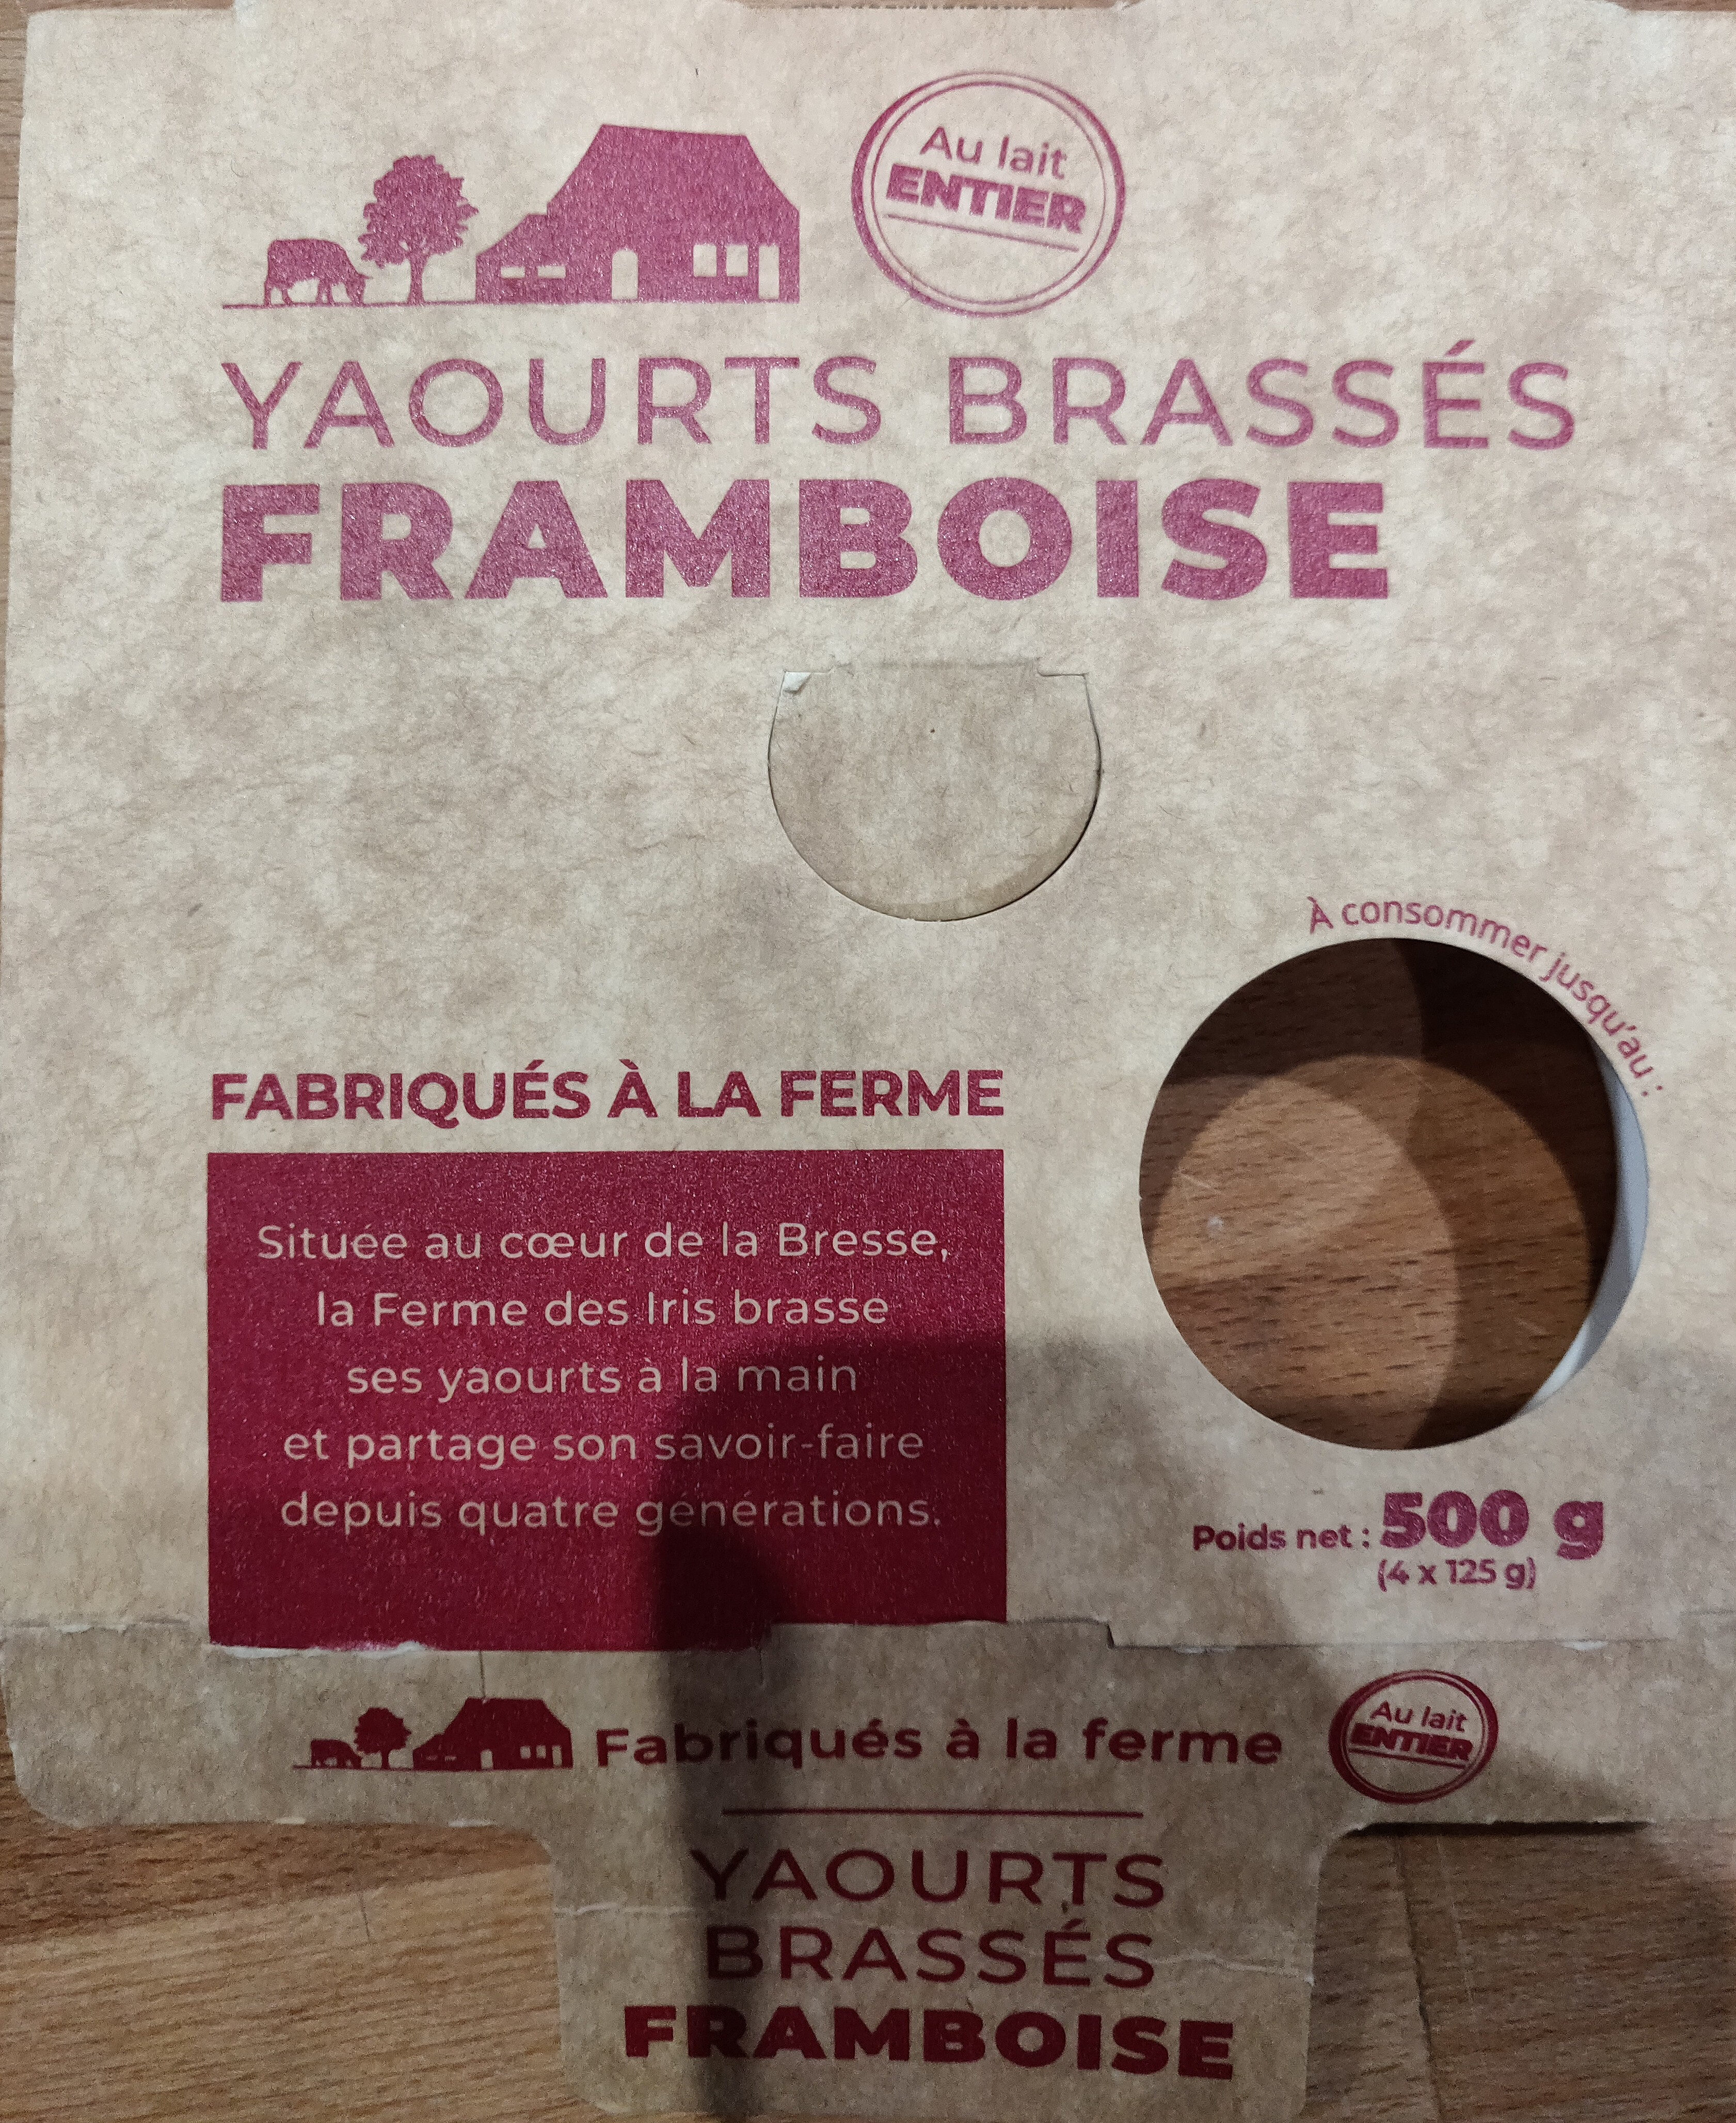 Yaourts brassés framboise - Product - fr